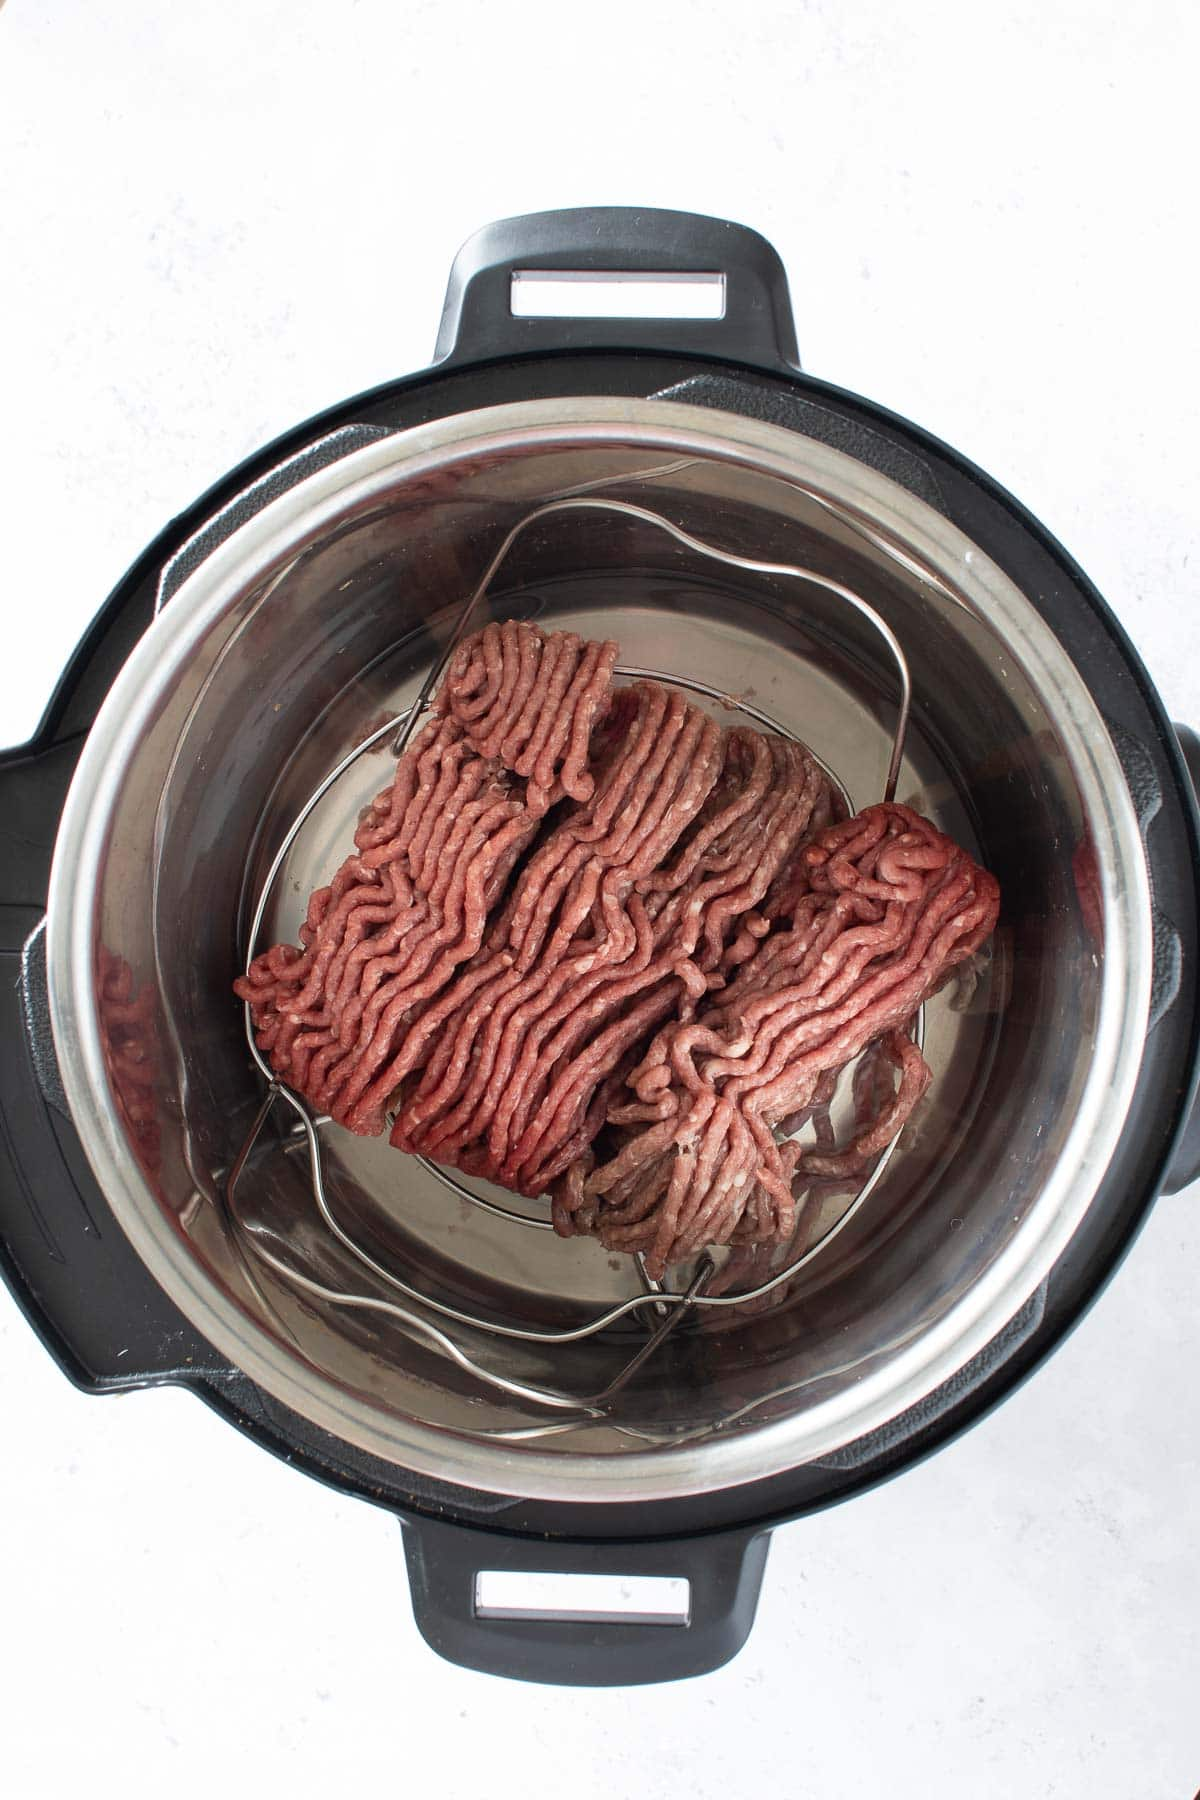 Ground beef in an Instant Pot.